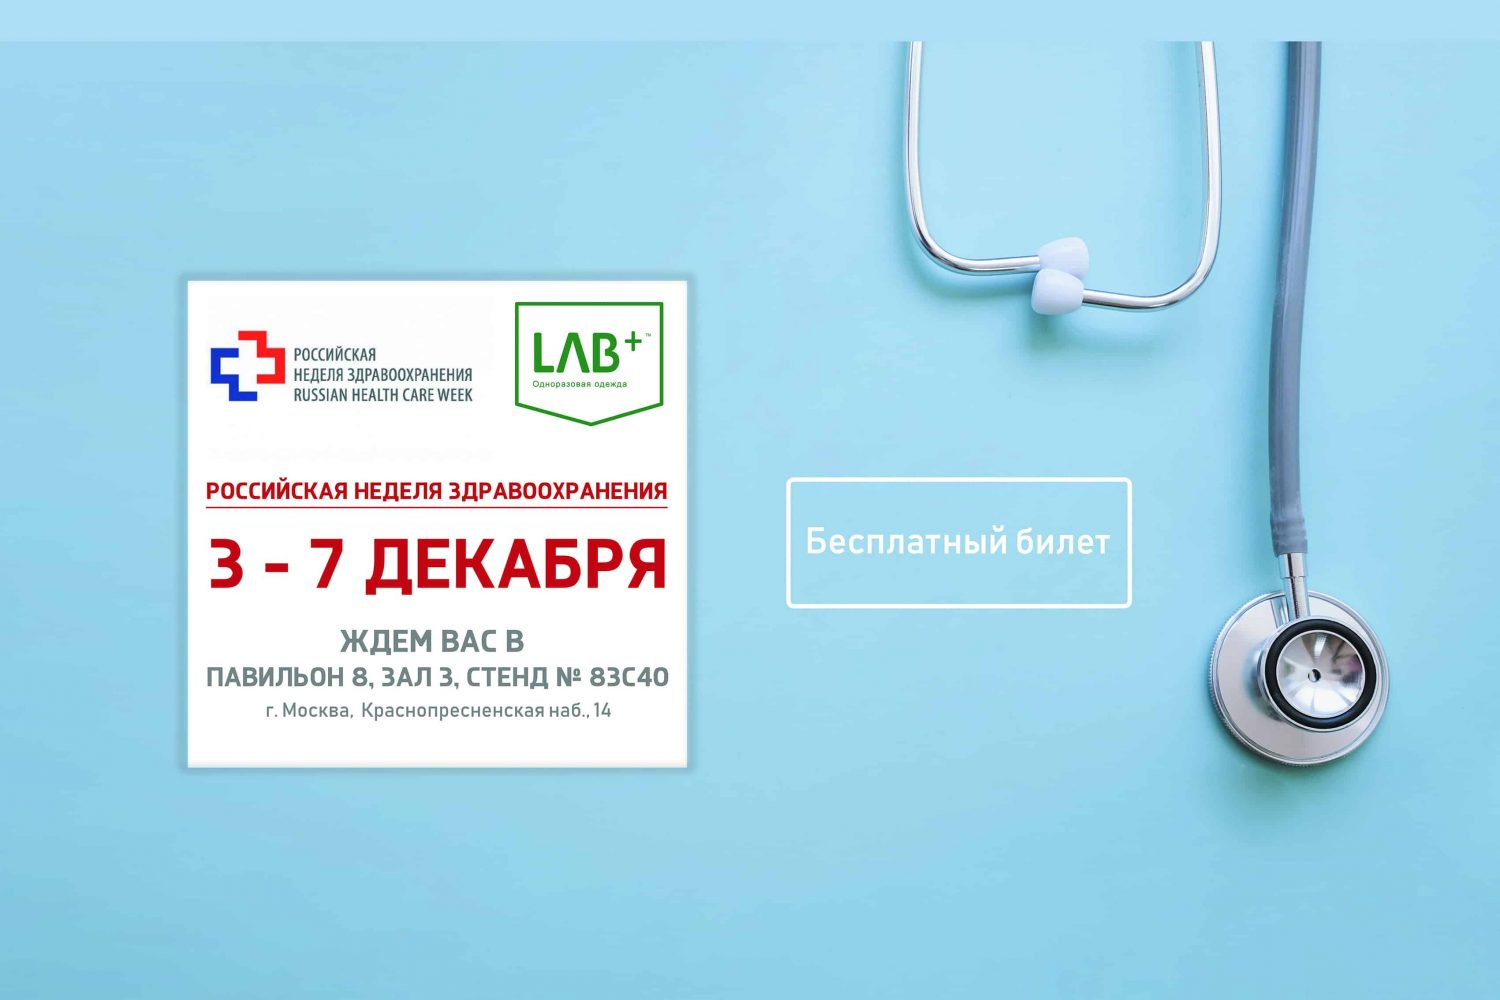 "Lab zdravoxranene 2018 crocus e1541599728451 - LAB + at the exhibition ""Health-2018"""